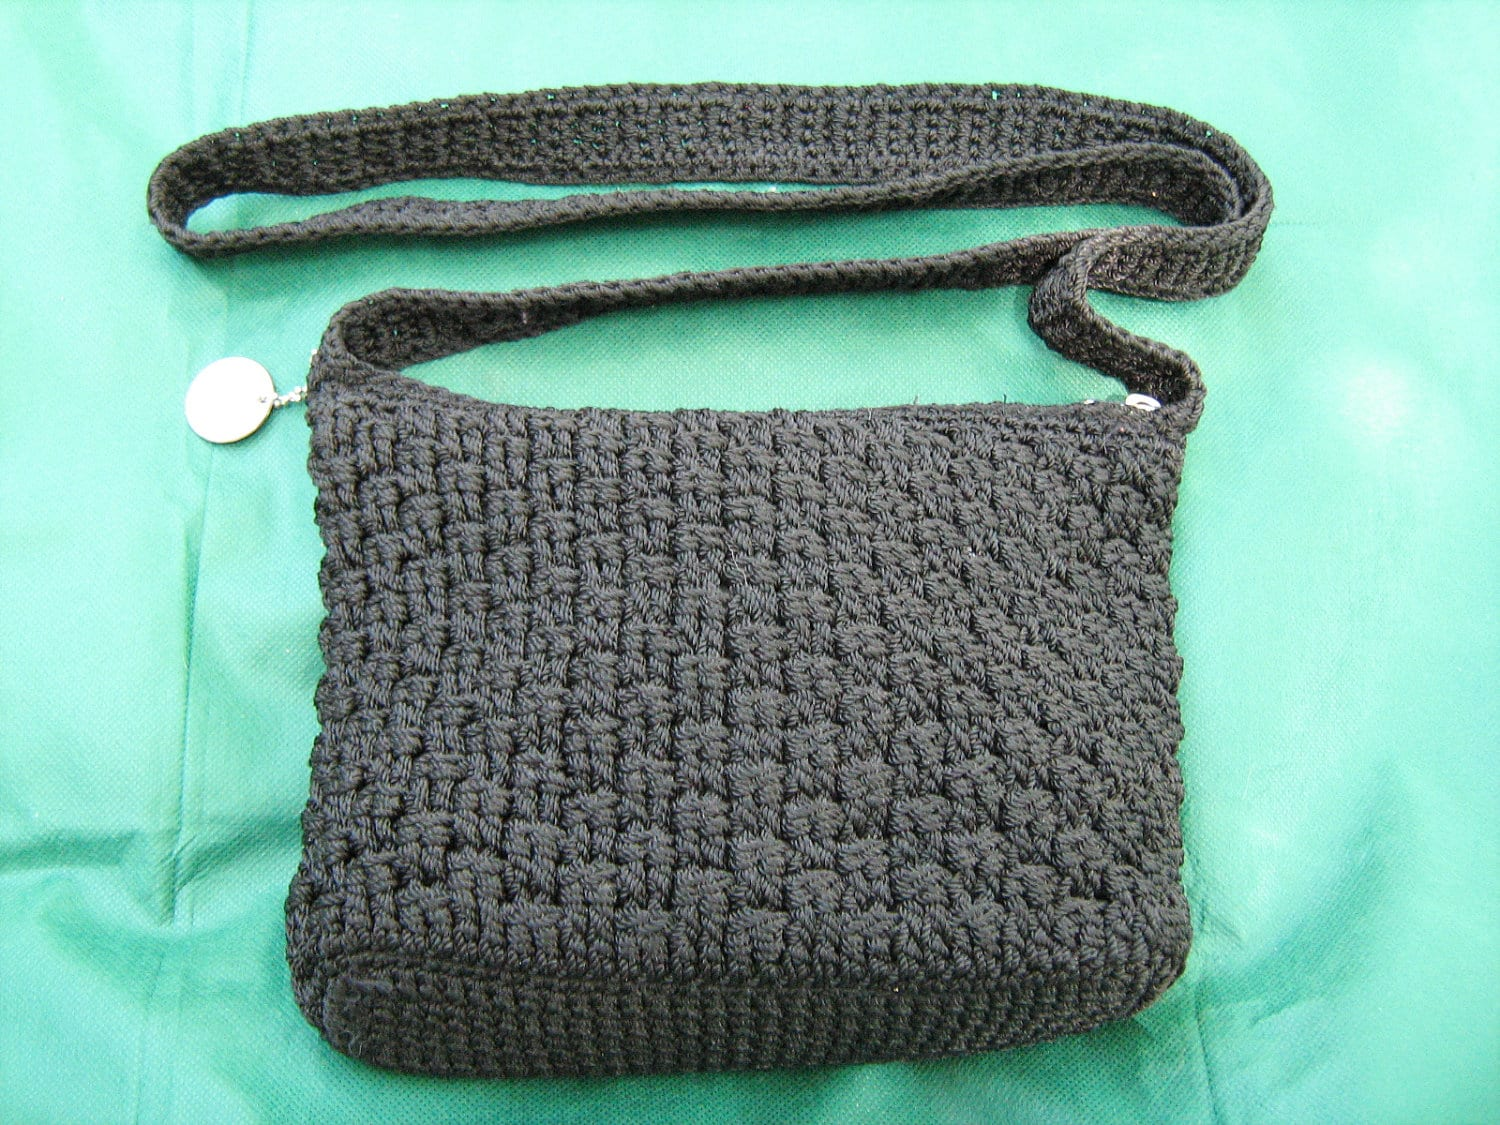 Le Sak Crochet Bags : ... Evening Bags Crossbody Bags Hobo Bags Shoulder Bags Top Handle Bags